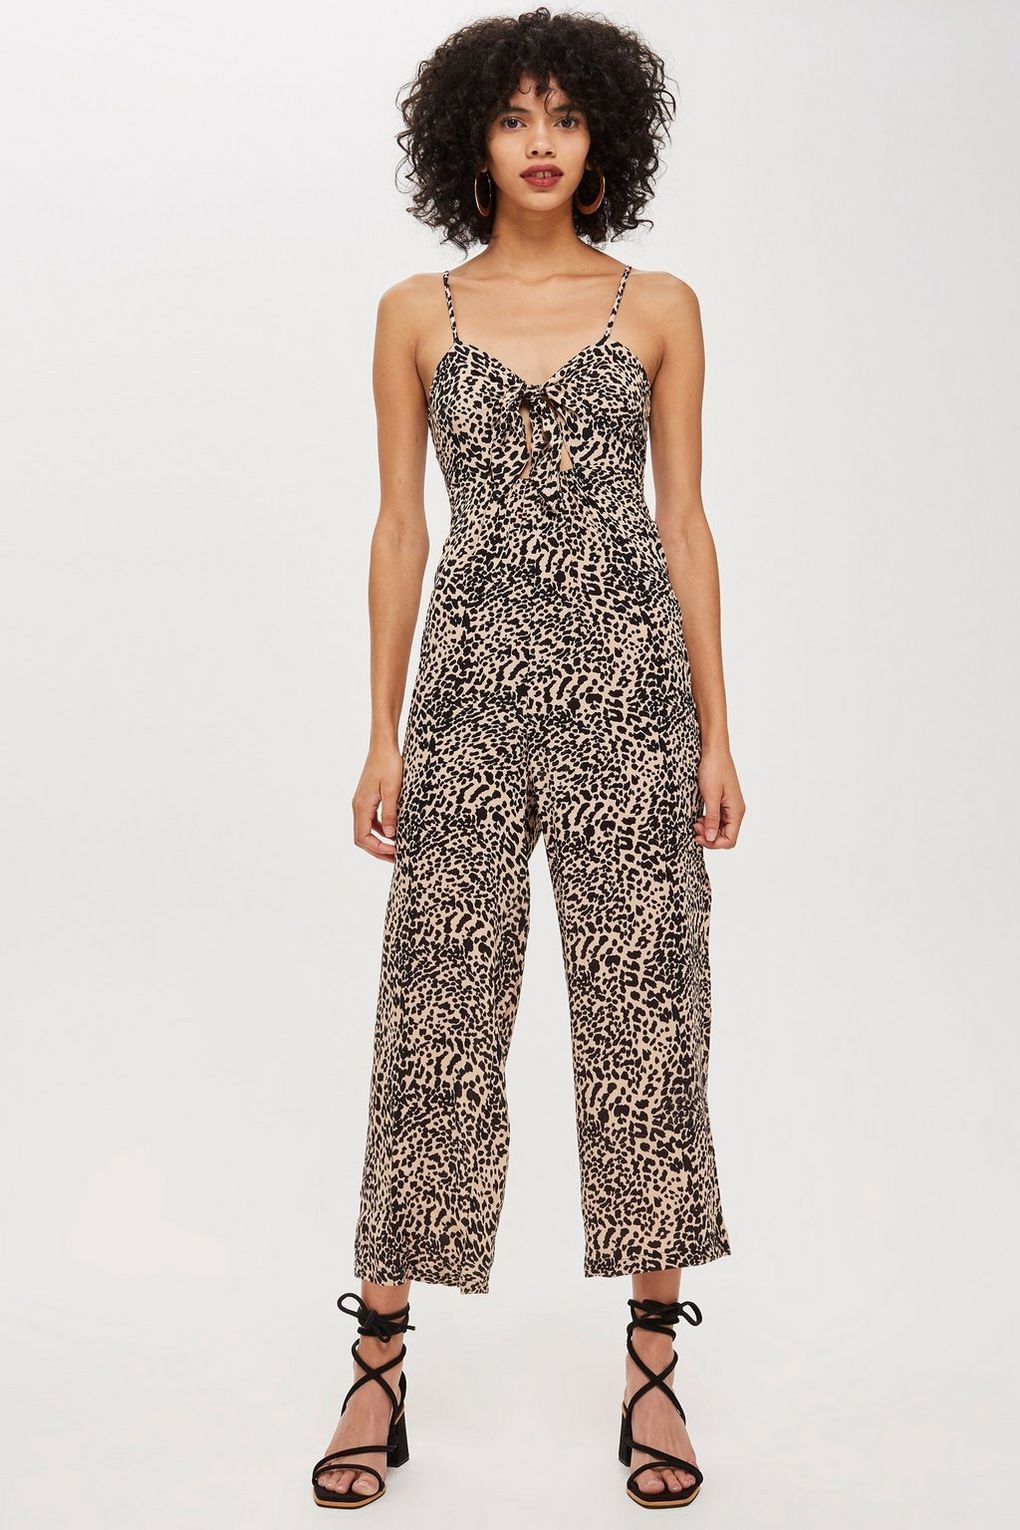 00cbcc46da Animal Print Jumpsuit - Trend  Animal Print - Clothing - Topshop Europe